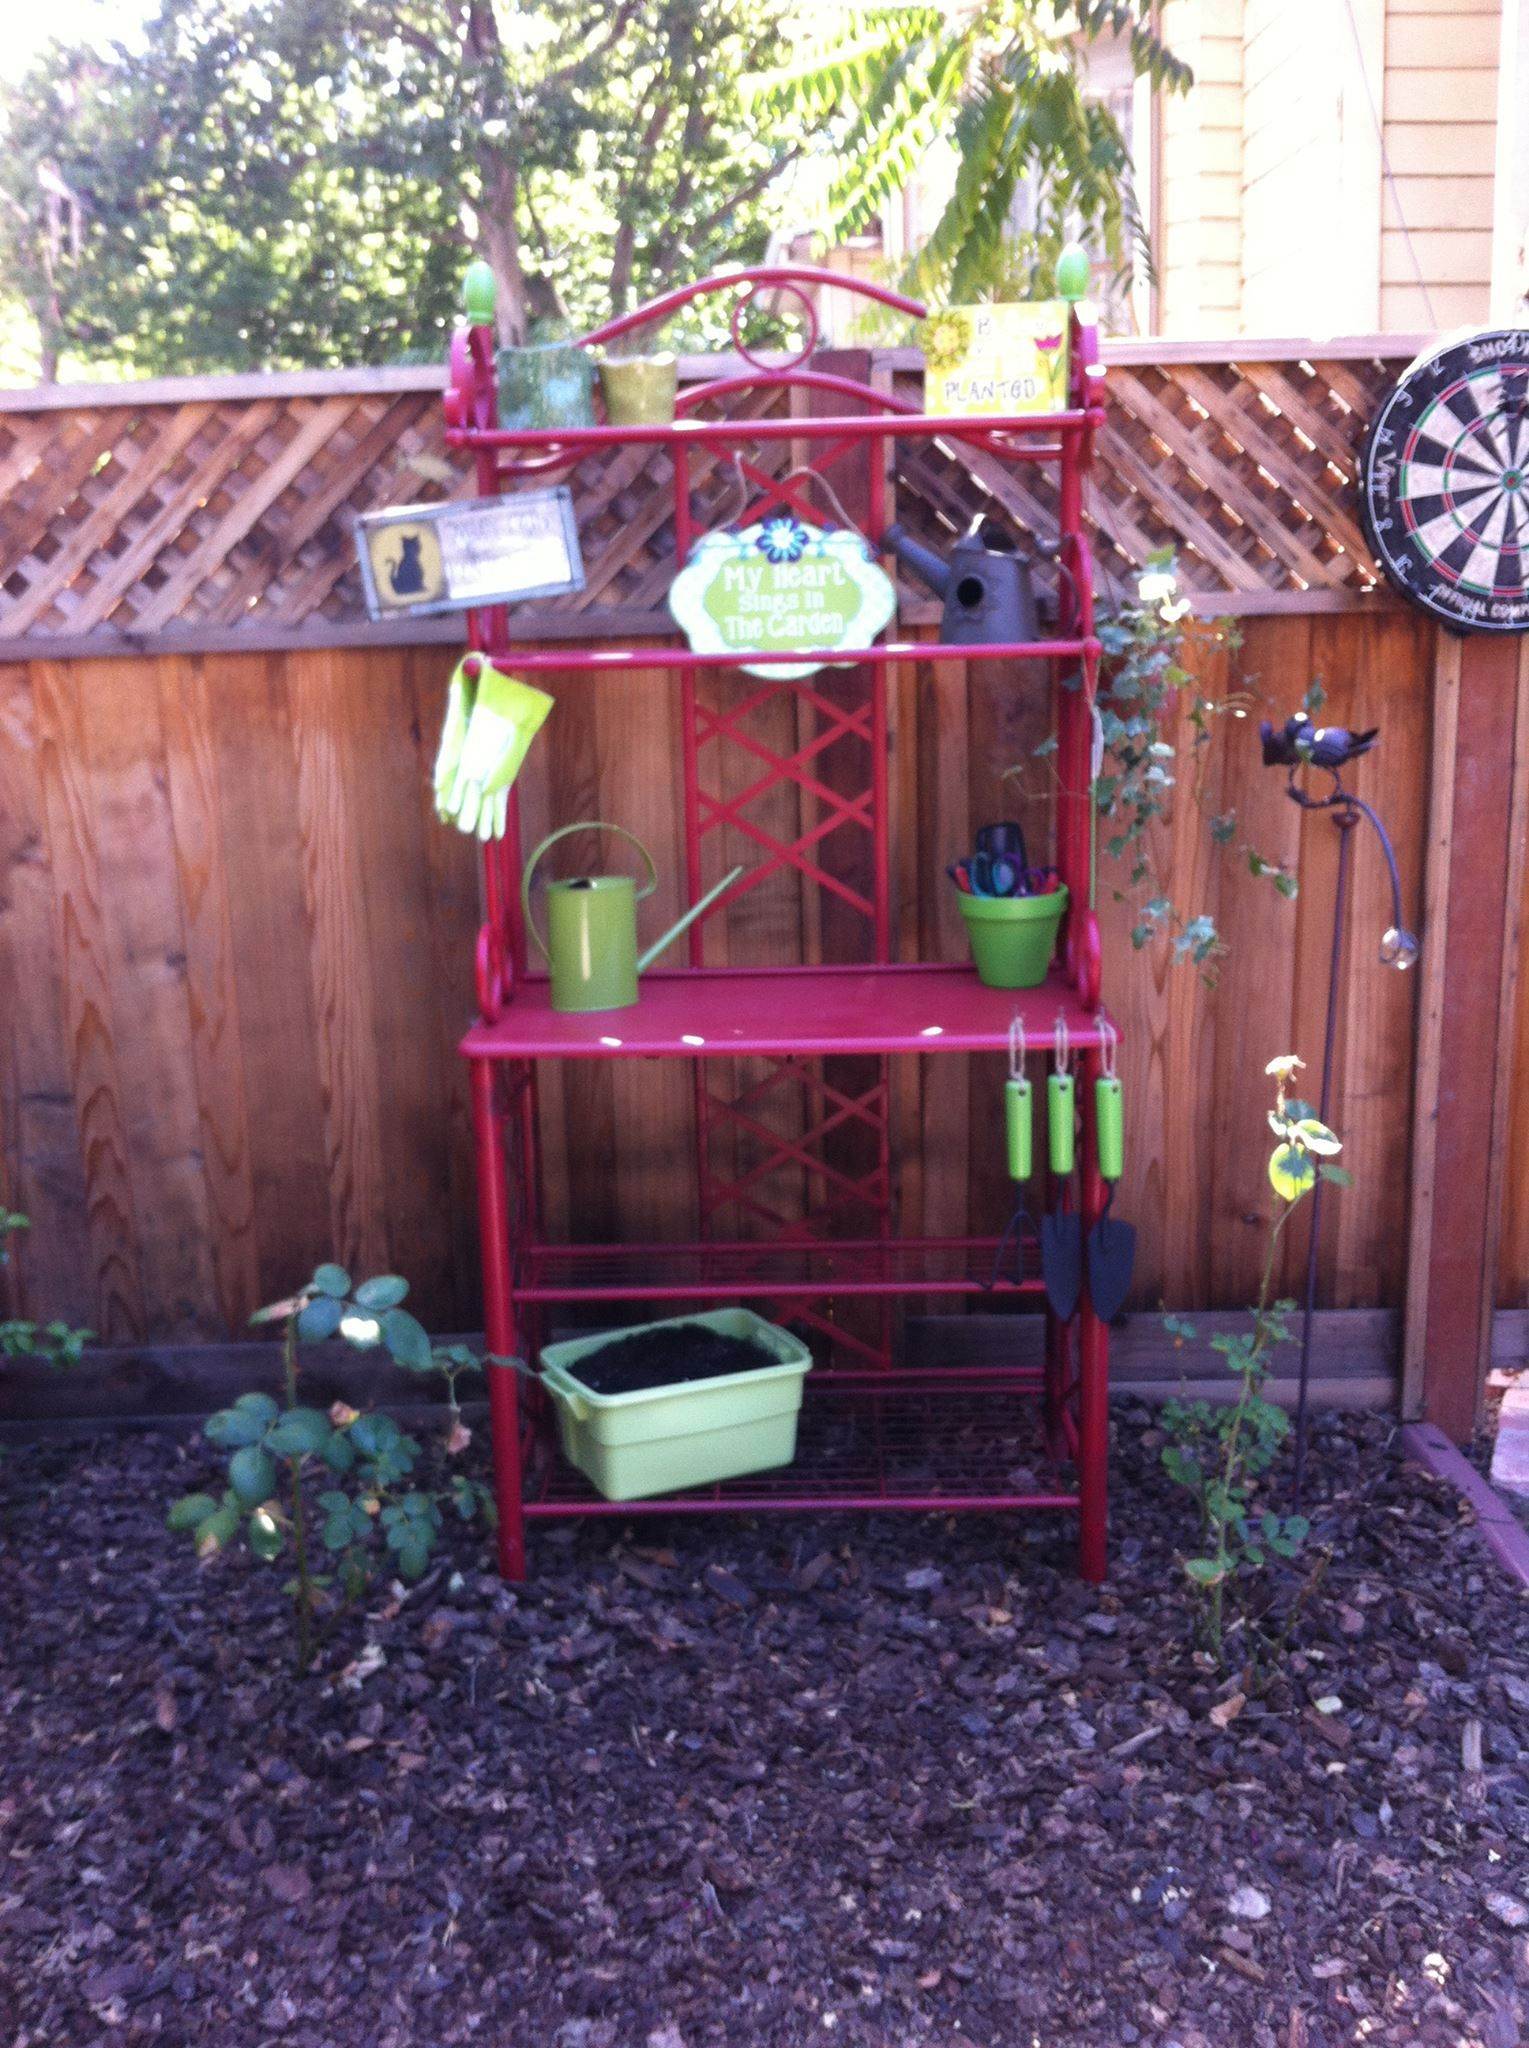 Potting Bench Started Out In Life As A Baker S Rack Upcycled